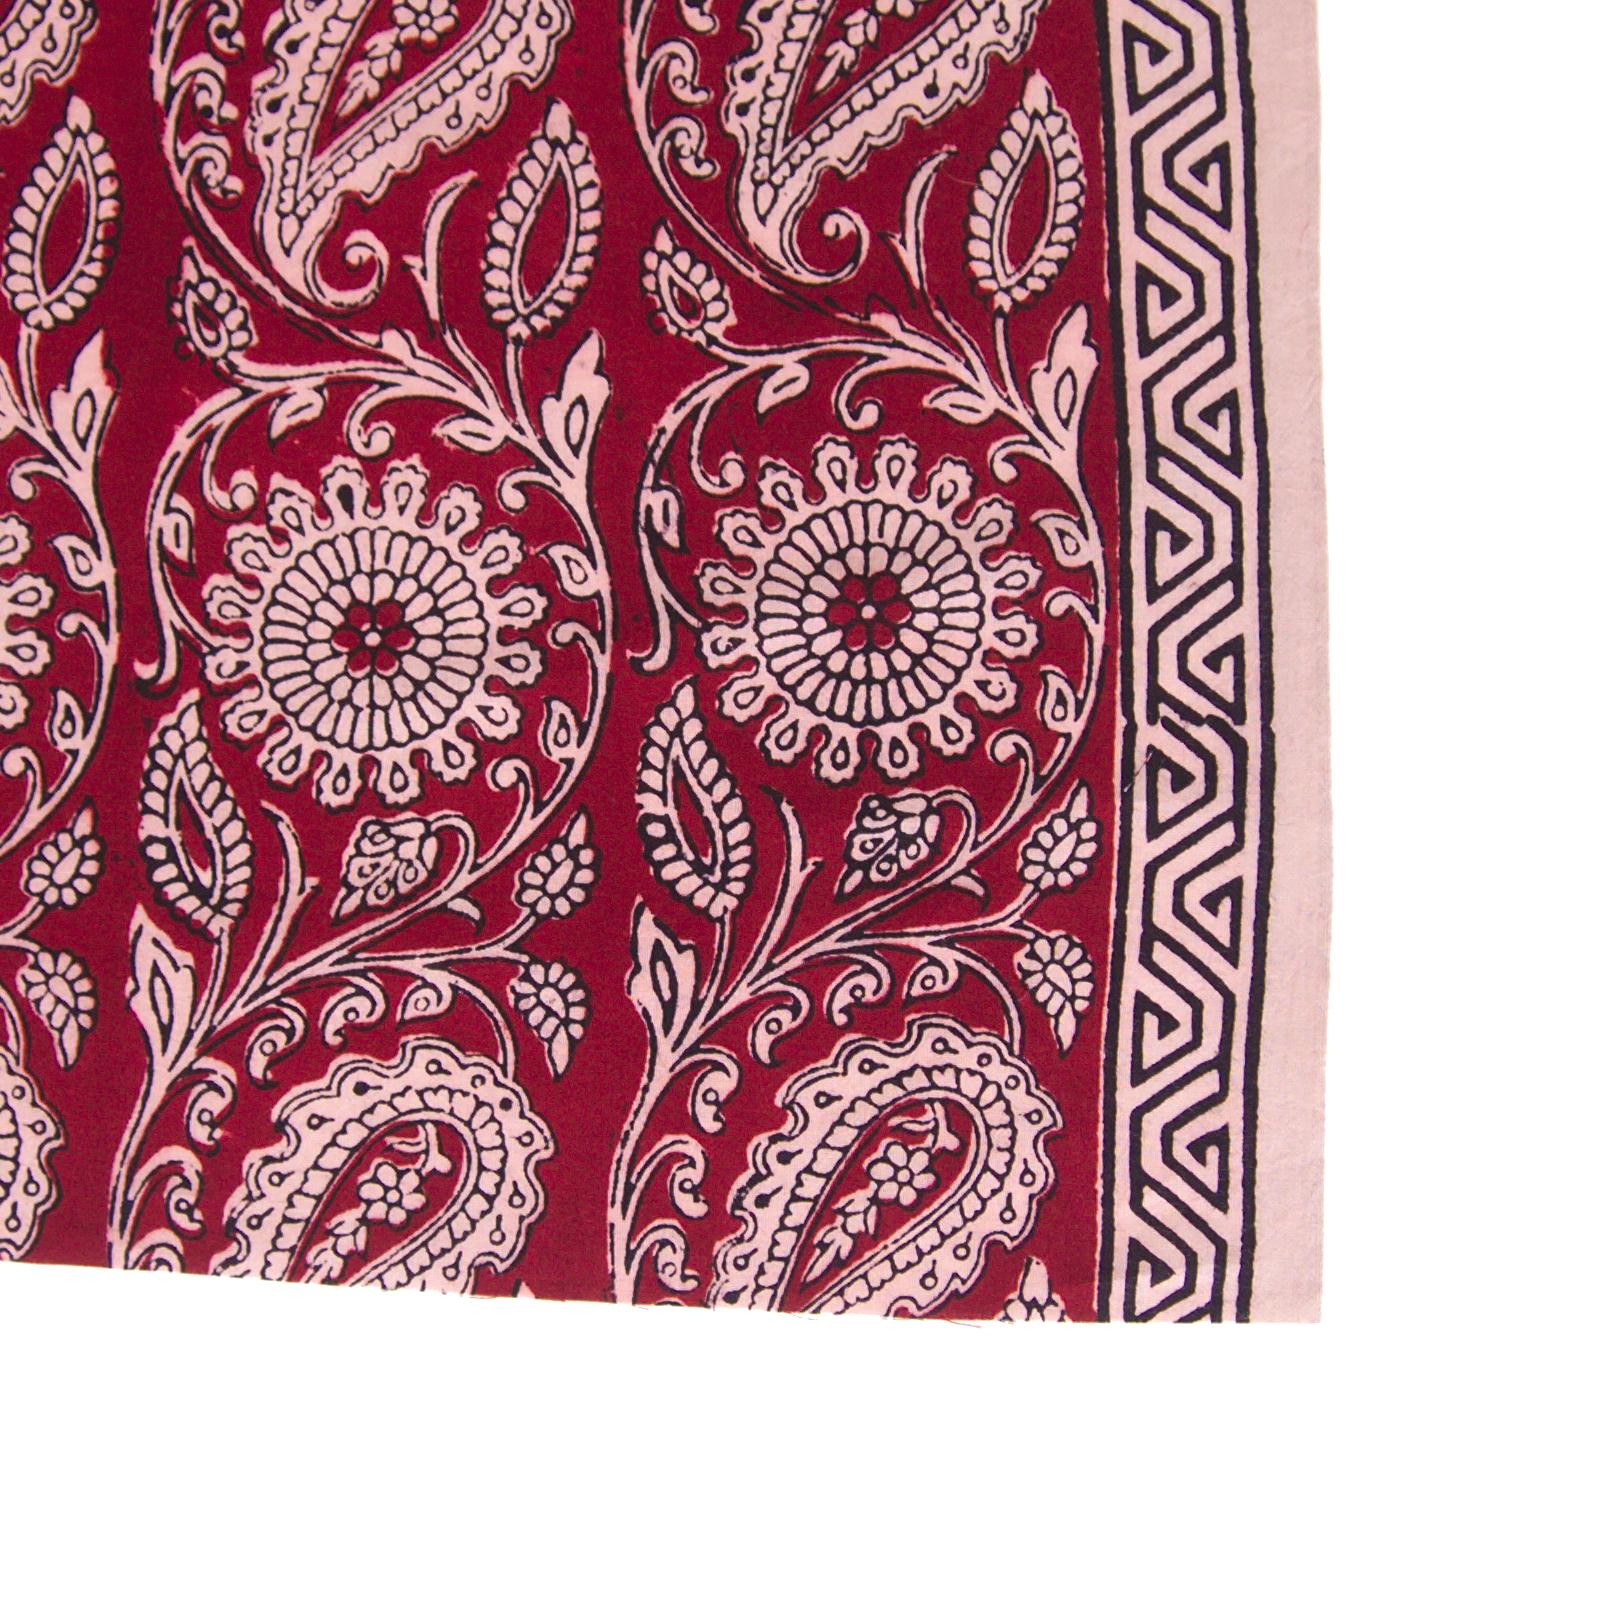 100% Block-Printed Cotton Fabric From India - Sichuan Pepper Design - Iron Rust Black & Alizarin Red Dyes - Border - Live